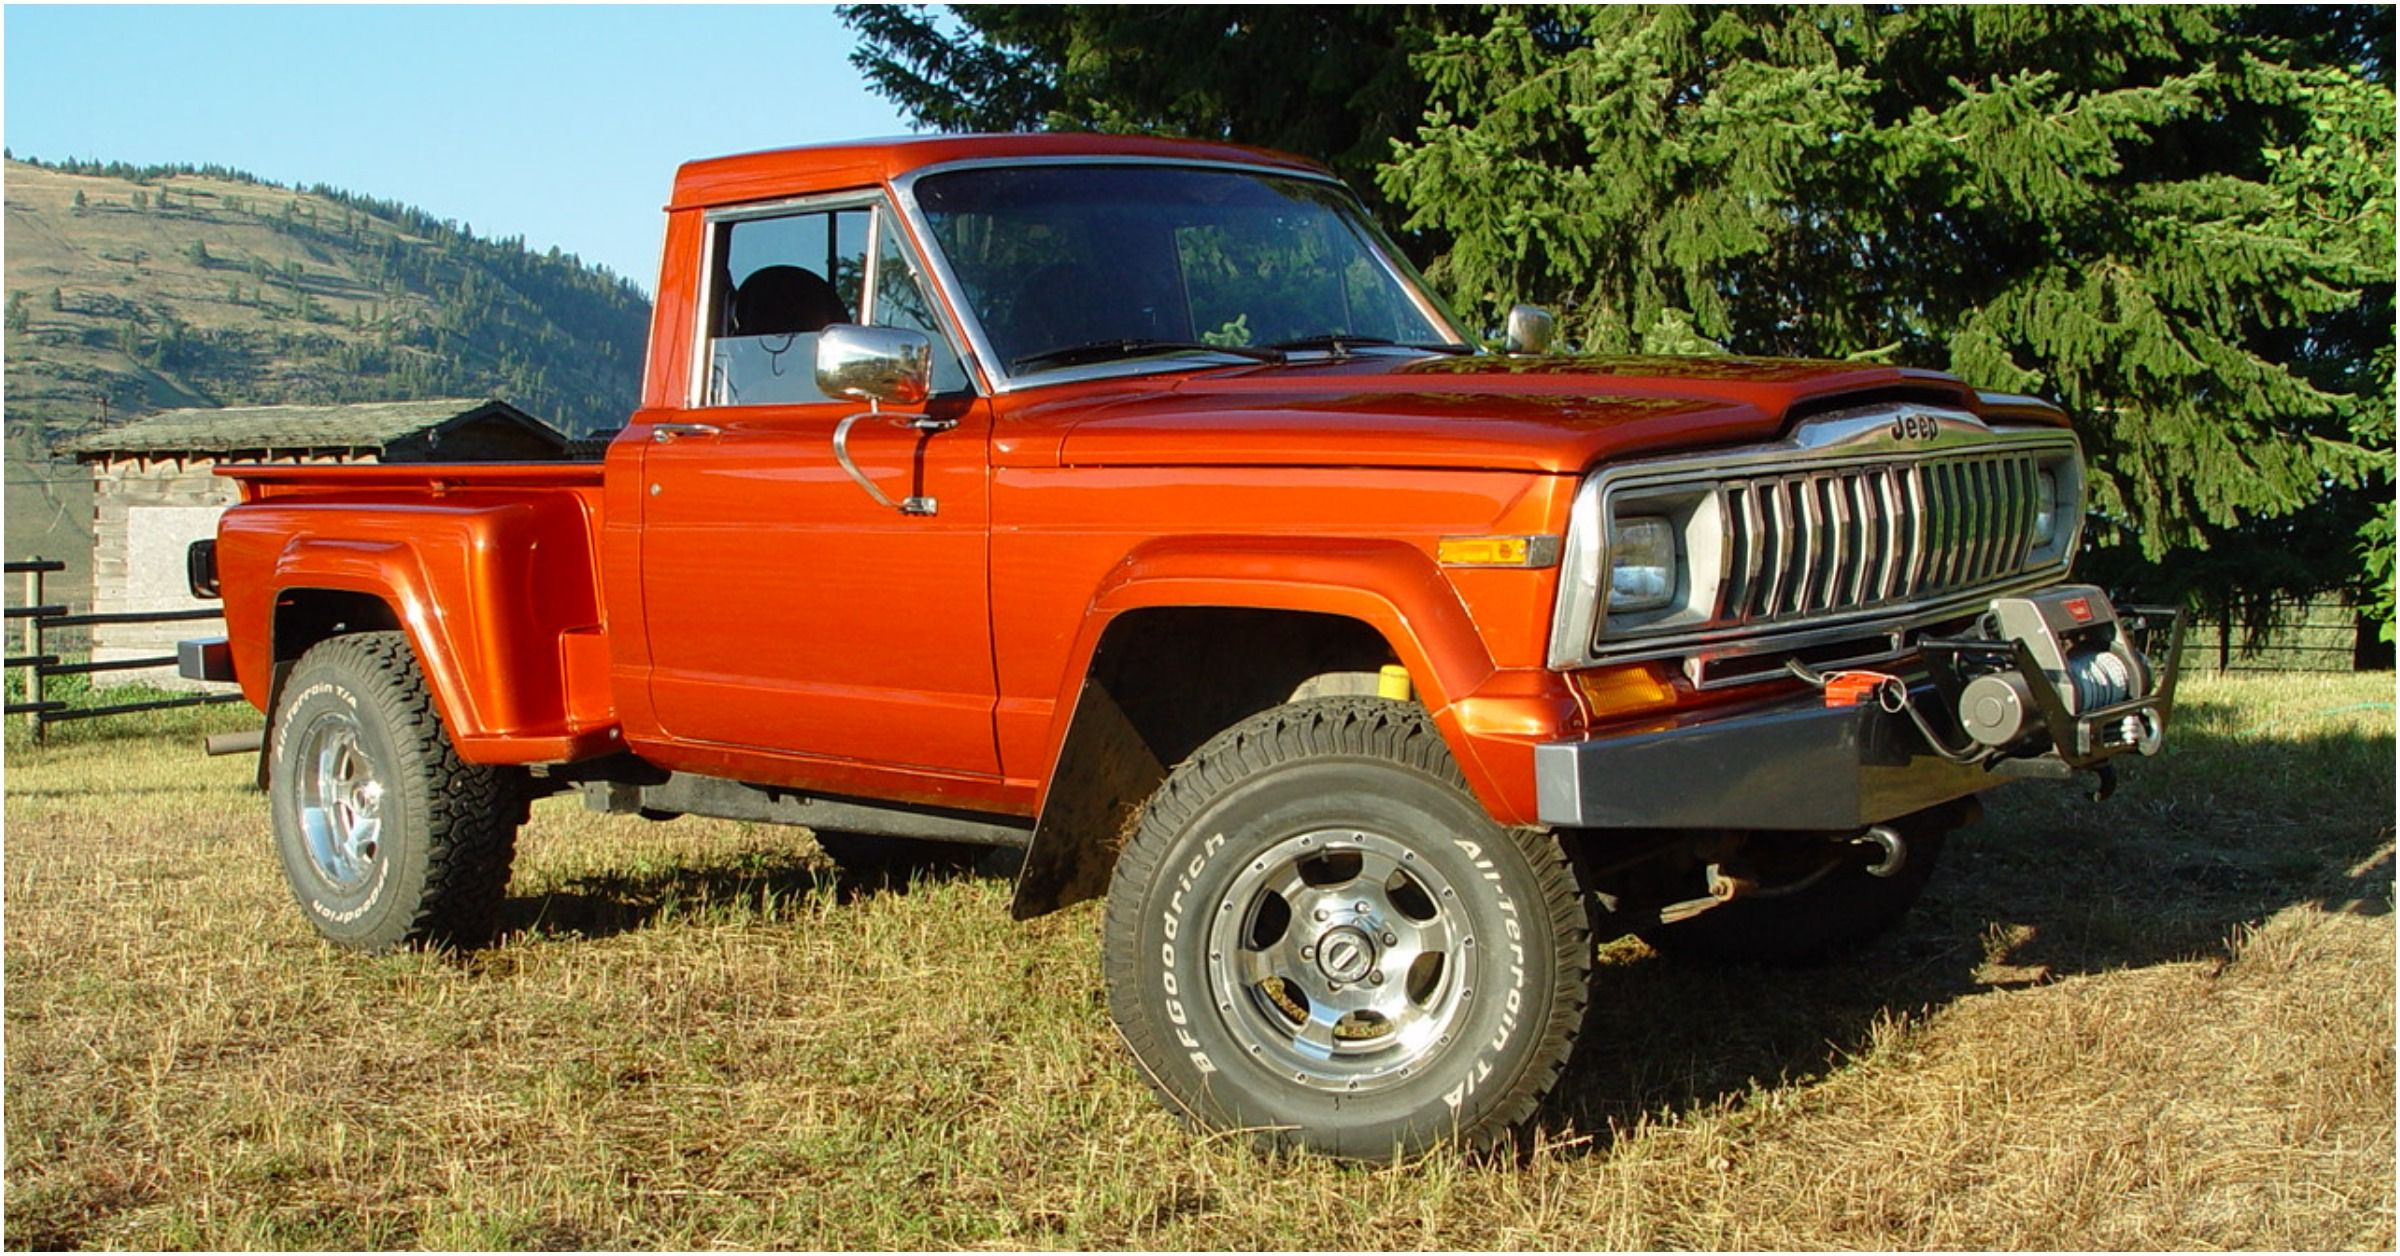 15 Toughest American Pickup Trucks Of The 80s And 90s